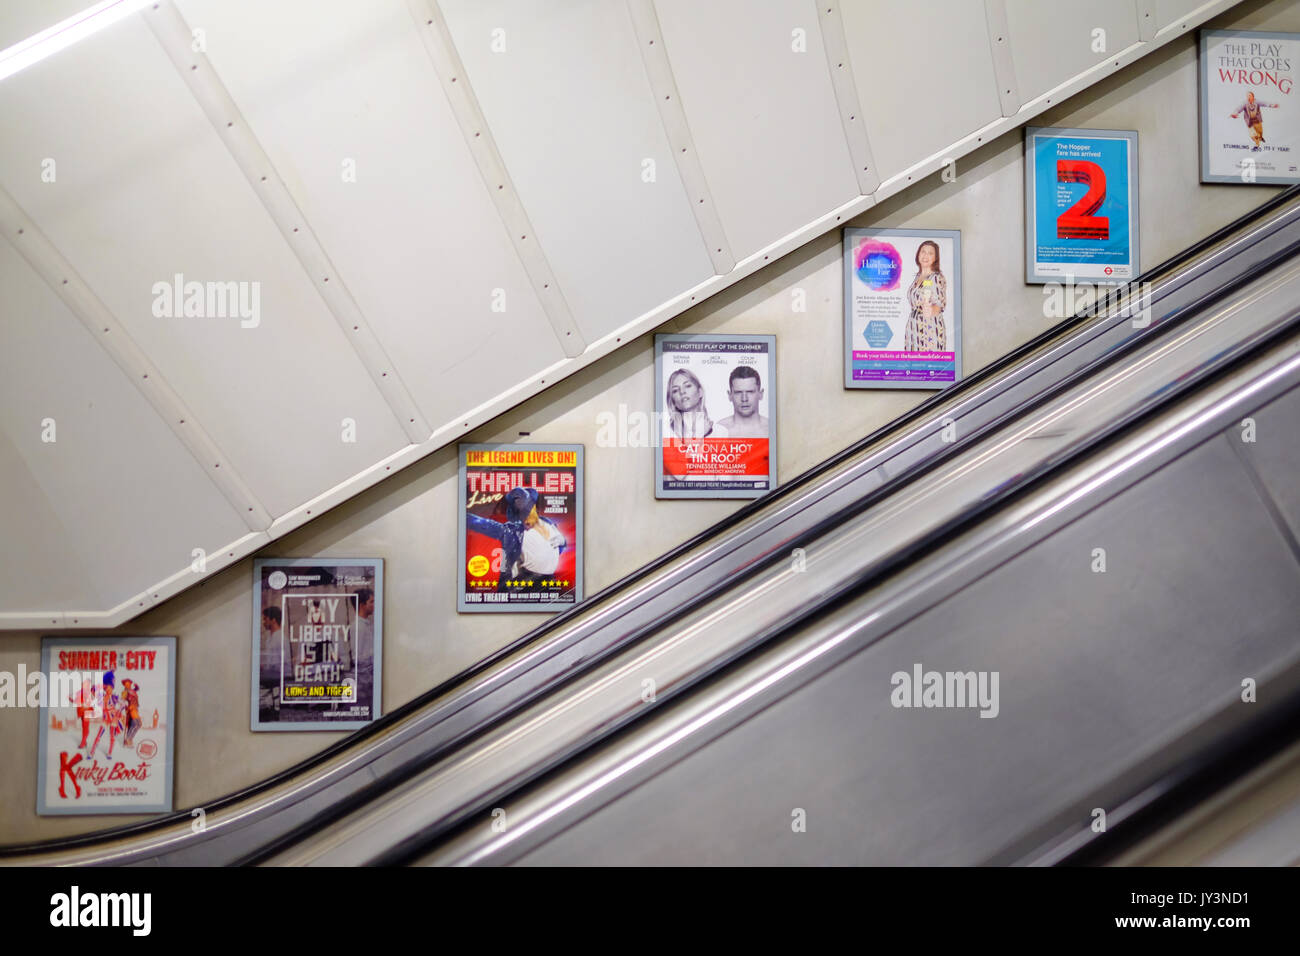 The advertising panels on the wall of the escalator at a London Underground Station. - Stock Image